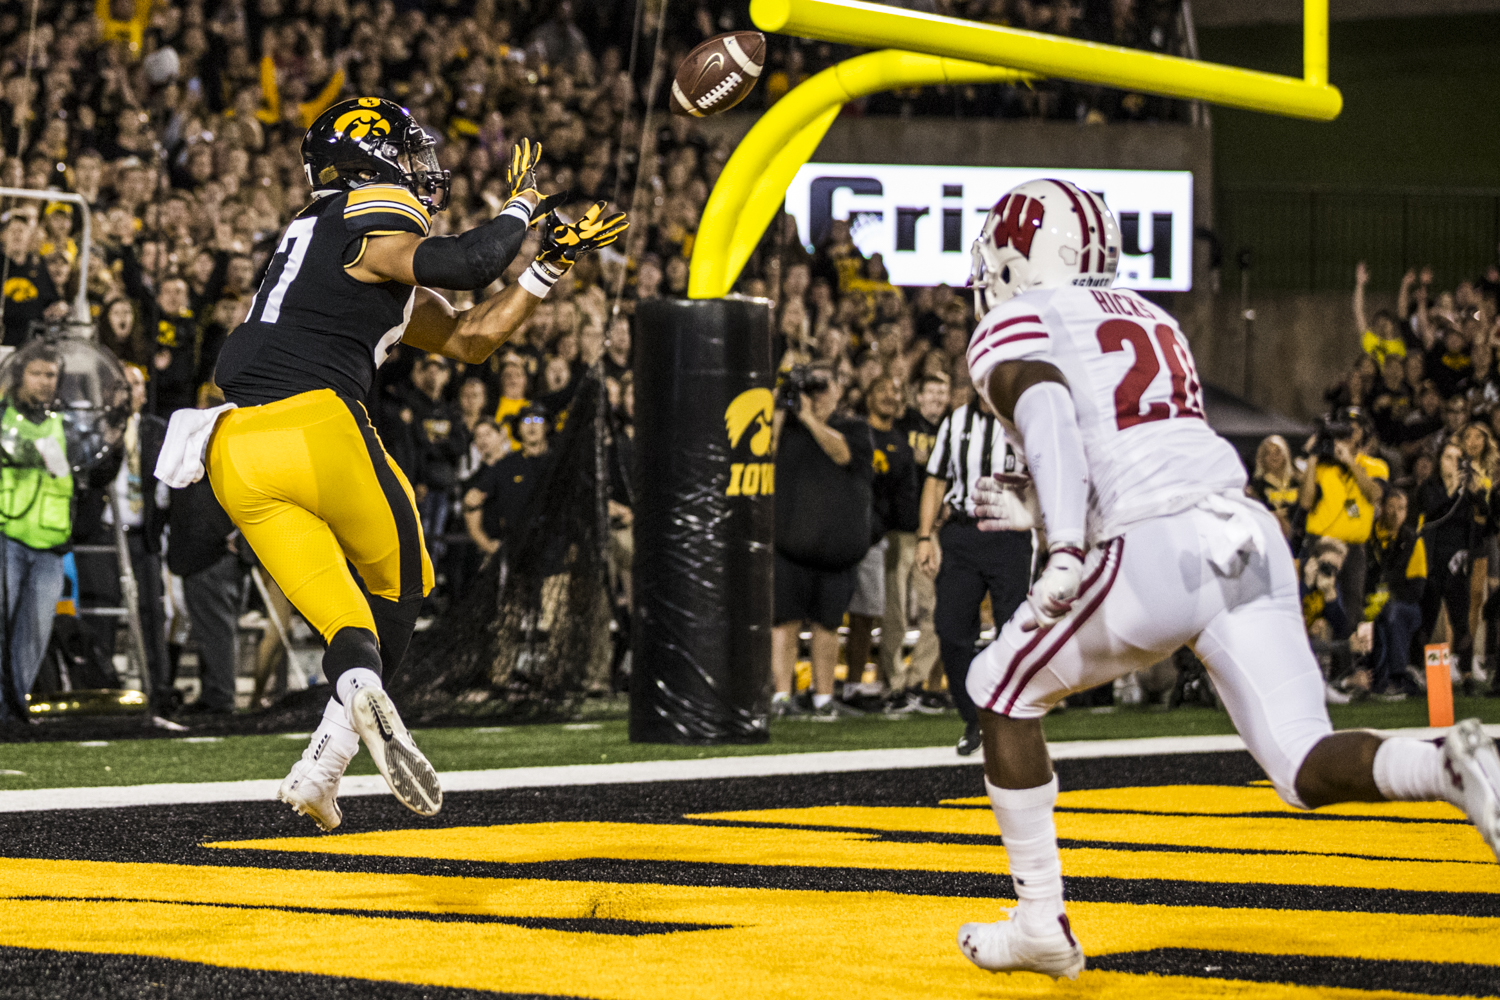 Iowa+tight+end+Noah+Fant+catches+a+touchdown+during+Iowa%27s+game+against+Wisconsin+at+Kinnick+Stadium+on+Saturday%2C+September+22%2C+2018.+The+Badgers+defeated+the+Hawkeyes+28-17.